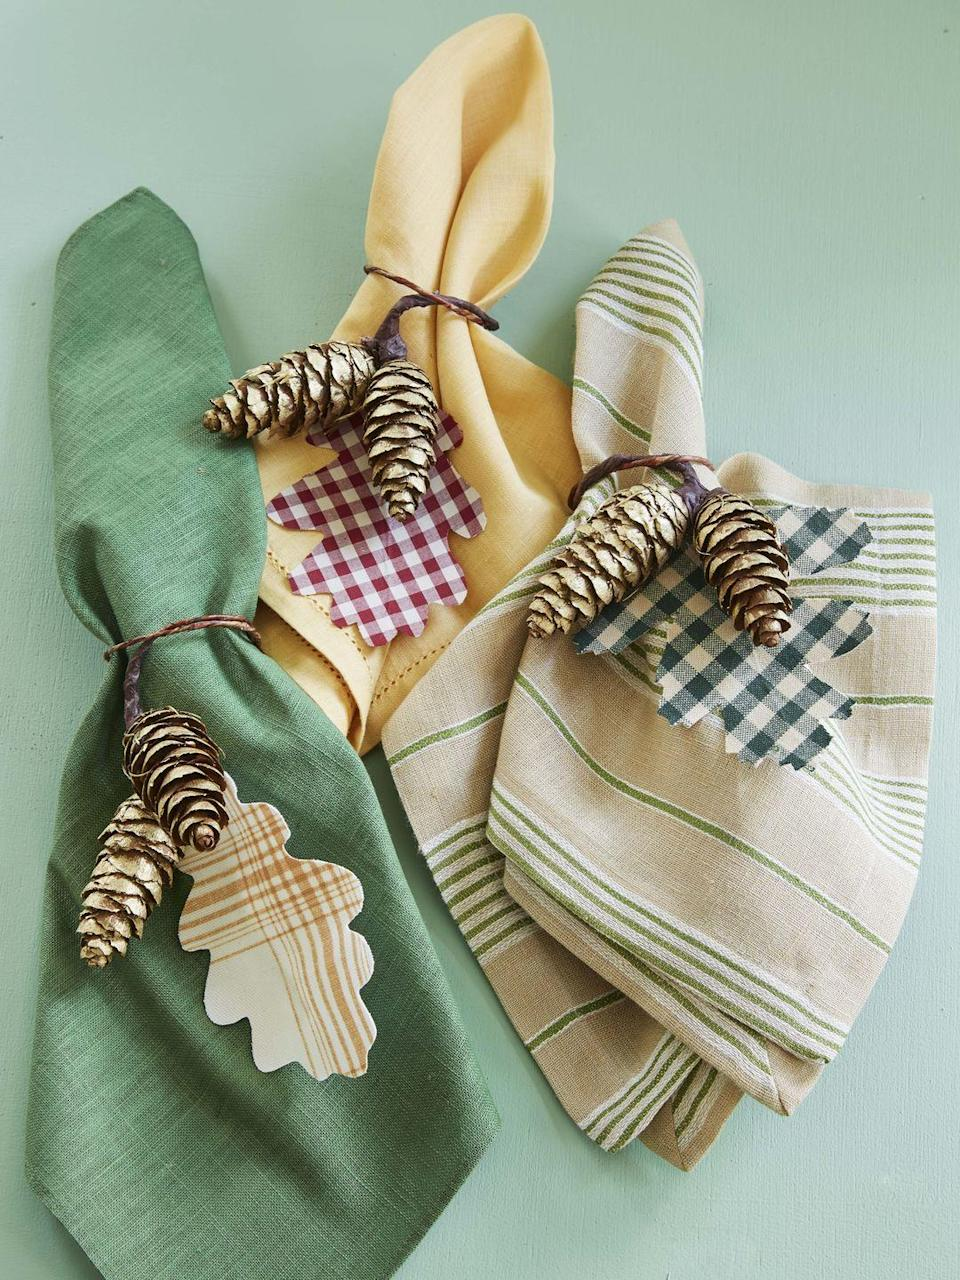 """<p>Oak-shaped leaves cut from scraps of fabric get tied up with mini pine cones that have been spray painted gold. Tie around corresponding color napkins with leather cording for an on-point table setting.</p><p><a class=""""link rapid-noclick-resp"""" href=""""https://www.amazon.com/Faux-Leather-Cord-Thread-Bracelet/dp/B07BGHV919/ref=sr_1_3?linkCode=ogi&tag=syn-yahoo-20&ascsubtag=%5Bartid%7C10050.g.2063%5Bsrc%7Cyahoo-us"""" rel=""""nofollow noopener"""" target=""""_blank"""" data-ylk=""""slk:SHOP LEATHER CORDING"""">SHOP LEATHER CORDING</a></p>"""